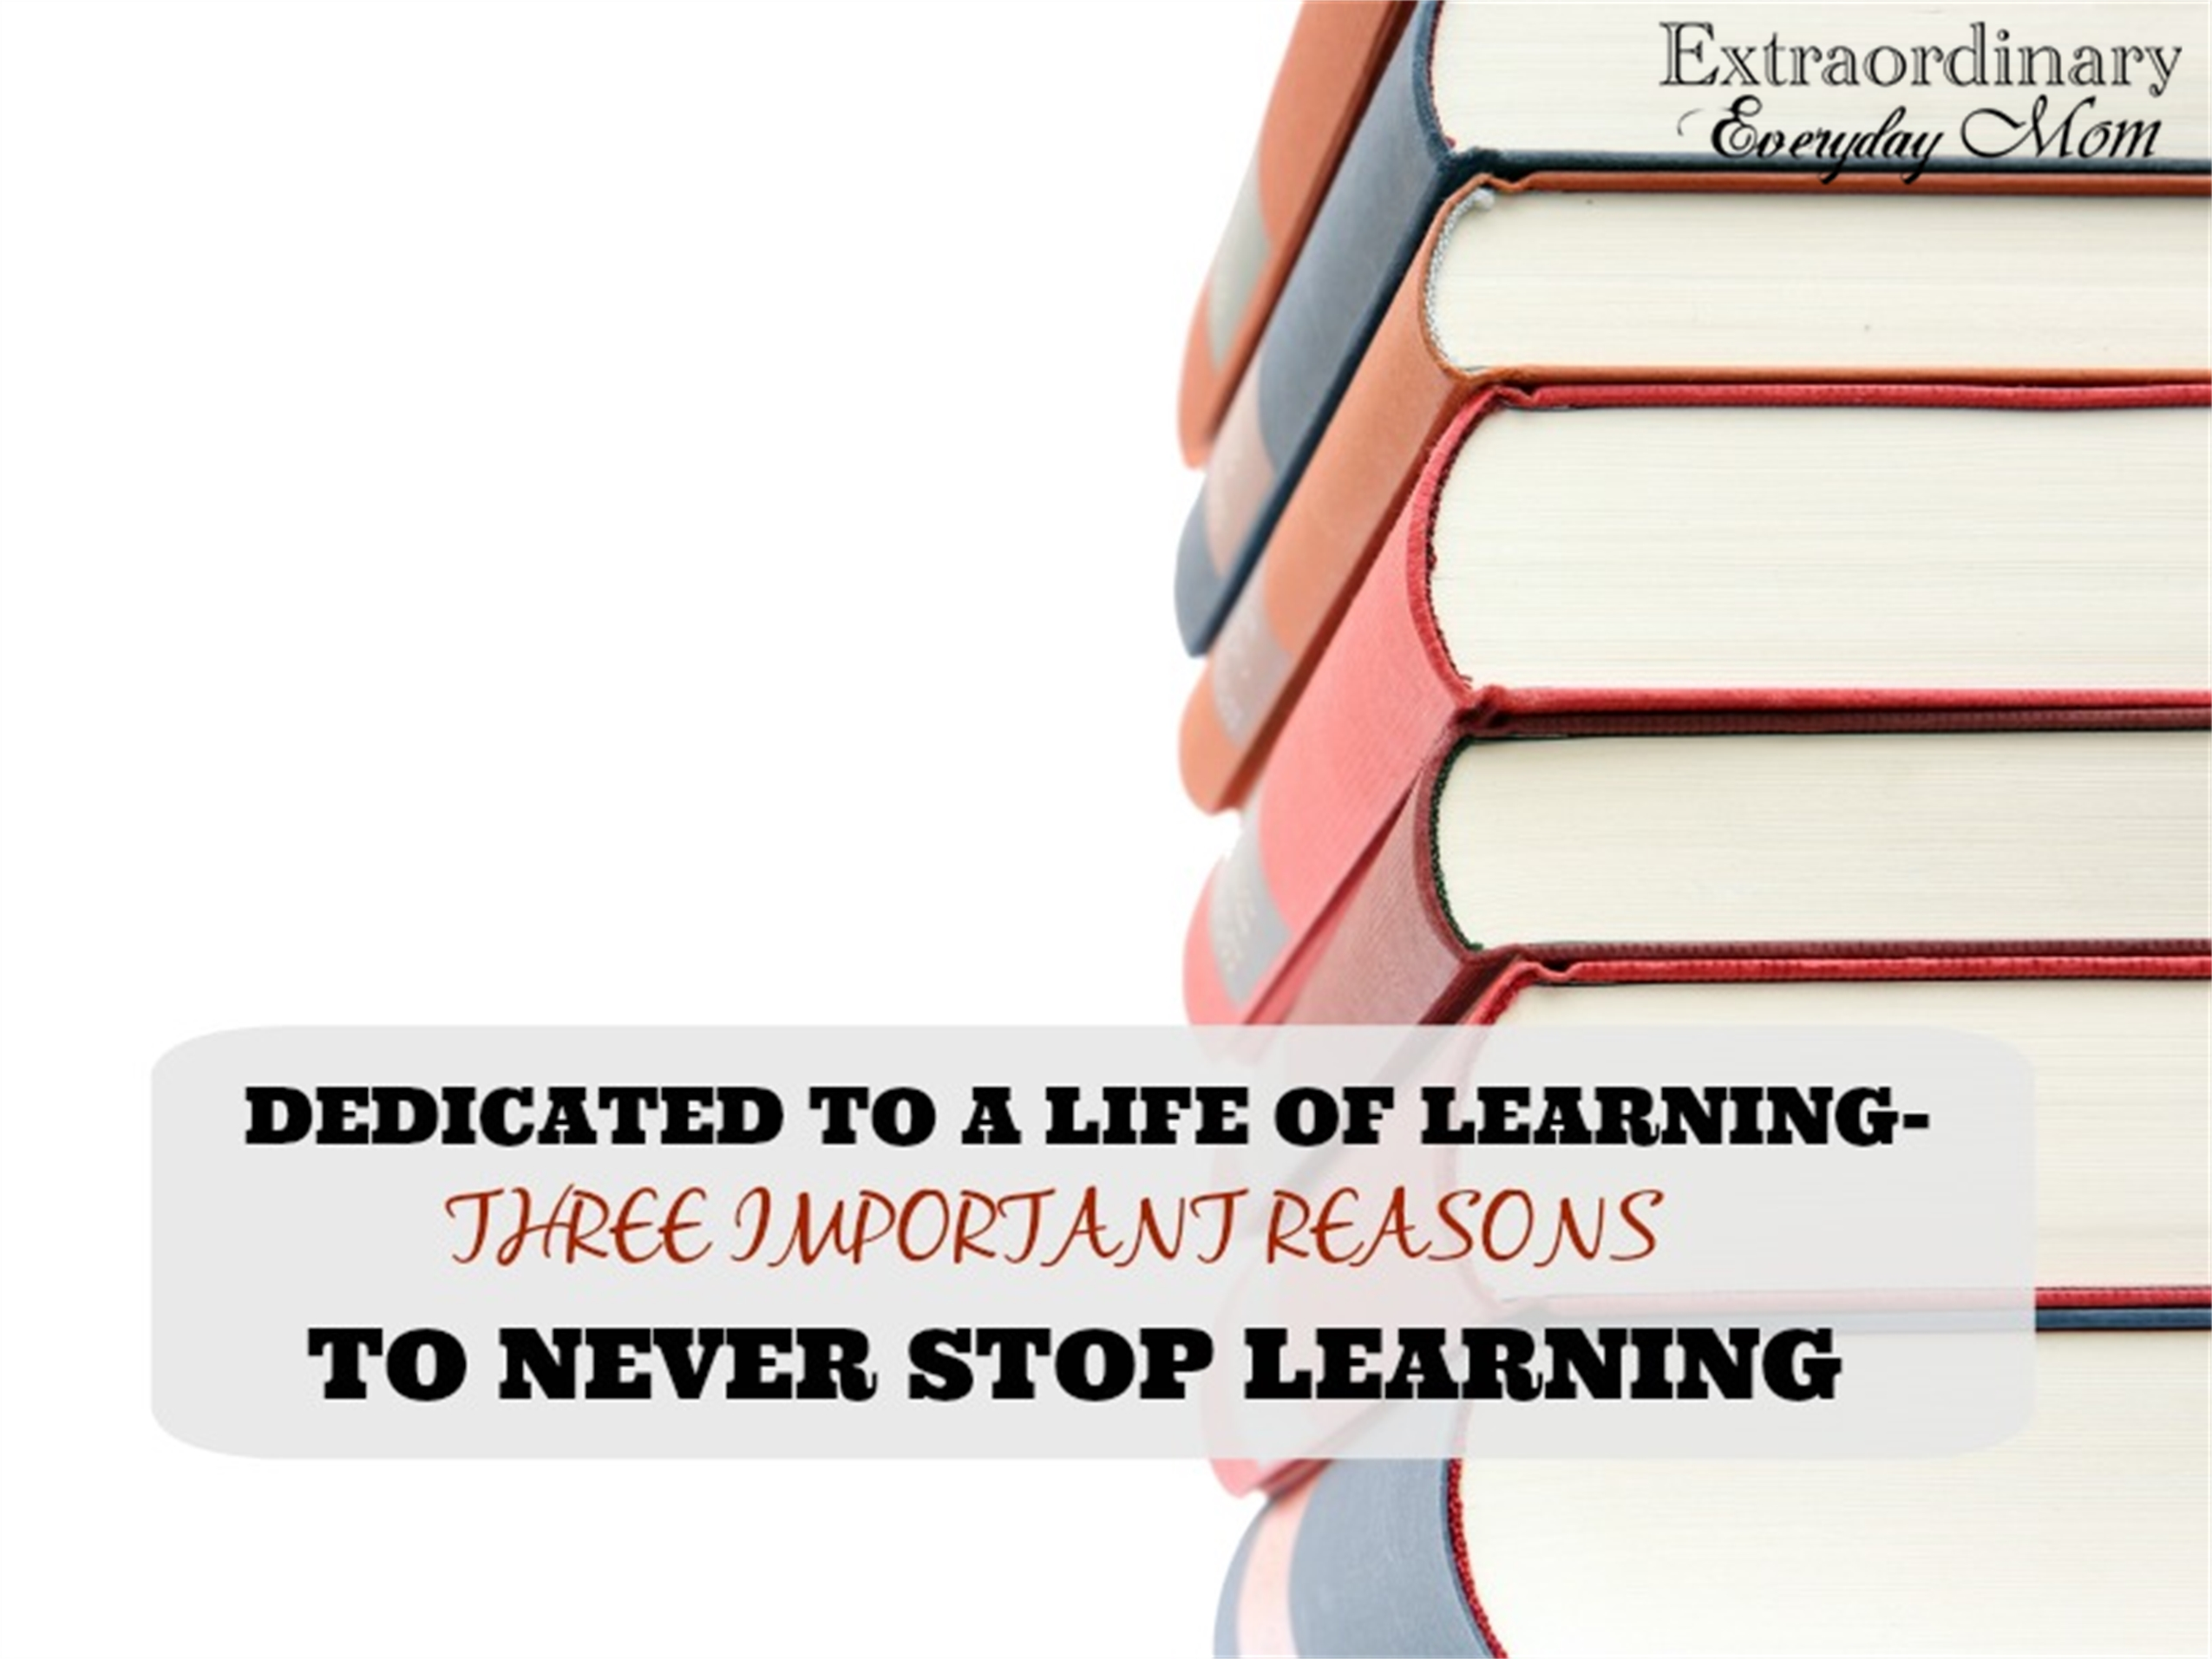 Dedicated to a Life of Learning-Three Important Reasons to Never Stop Learning